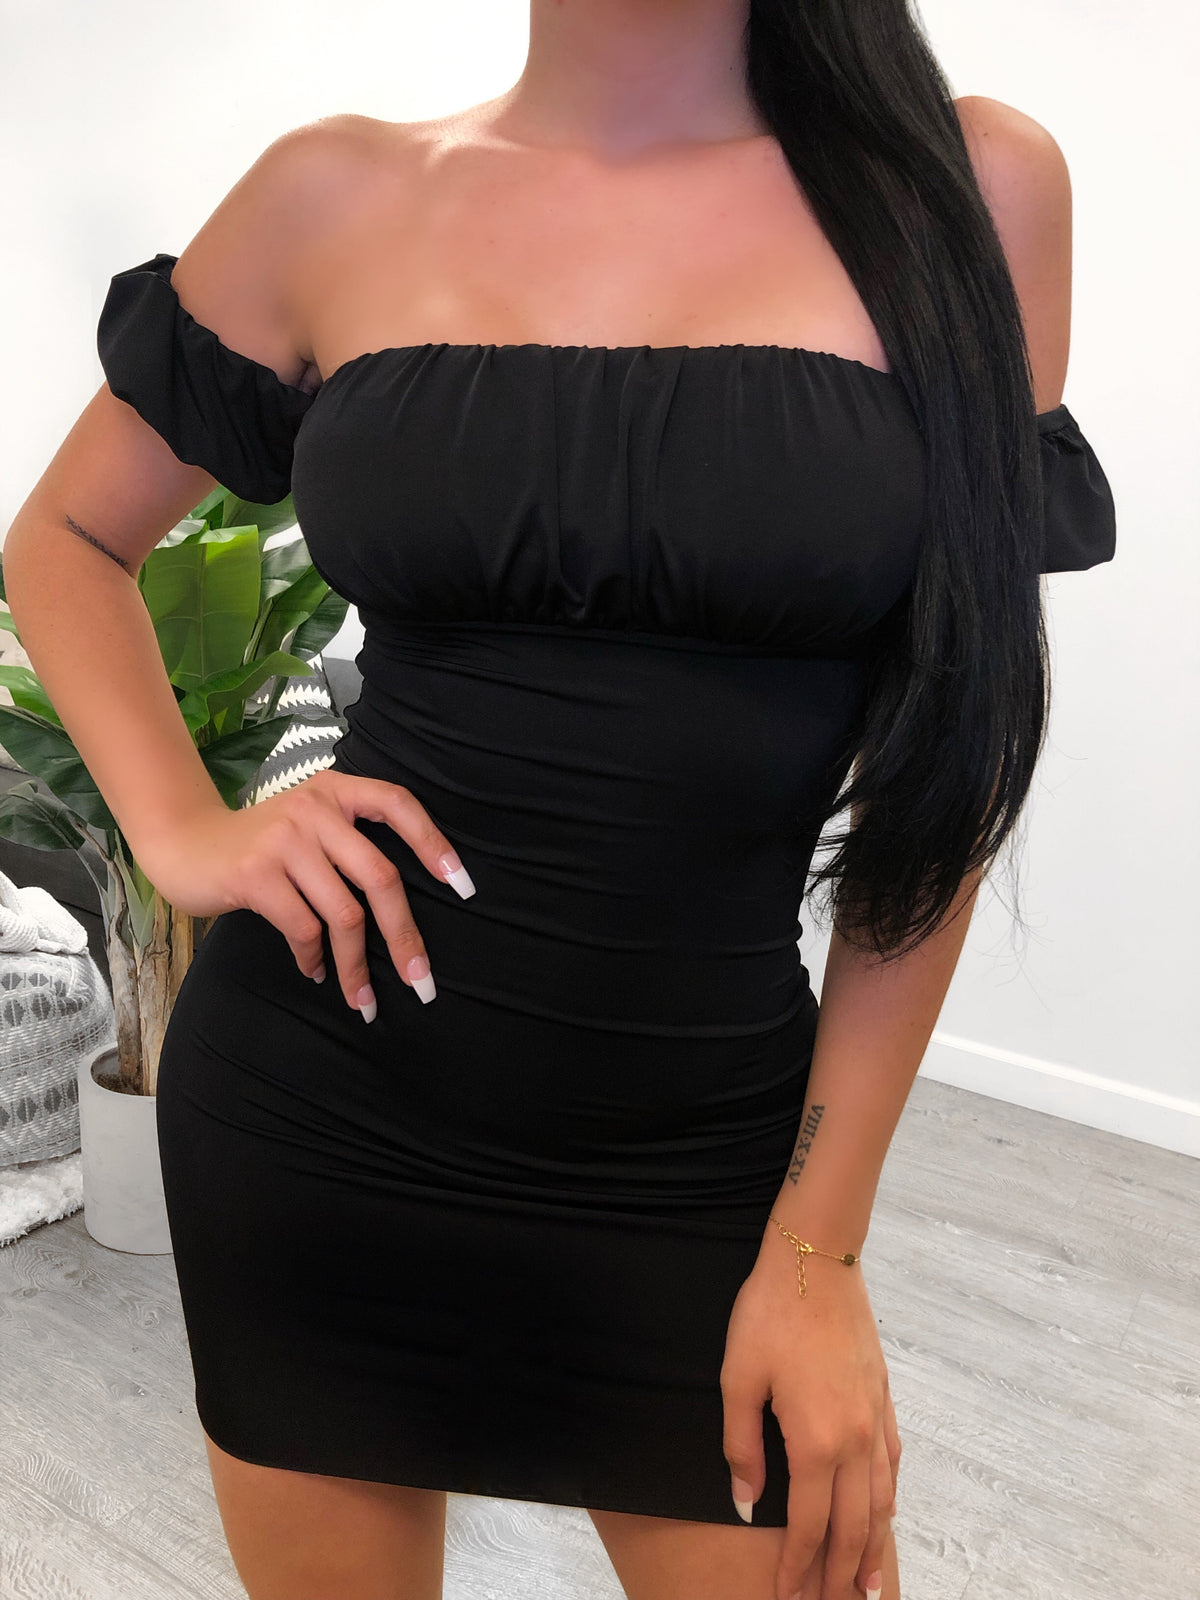 black midi dress . off the shoulder dress with small sleeves around arms. Double layered. Dress comes in 3 colors.